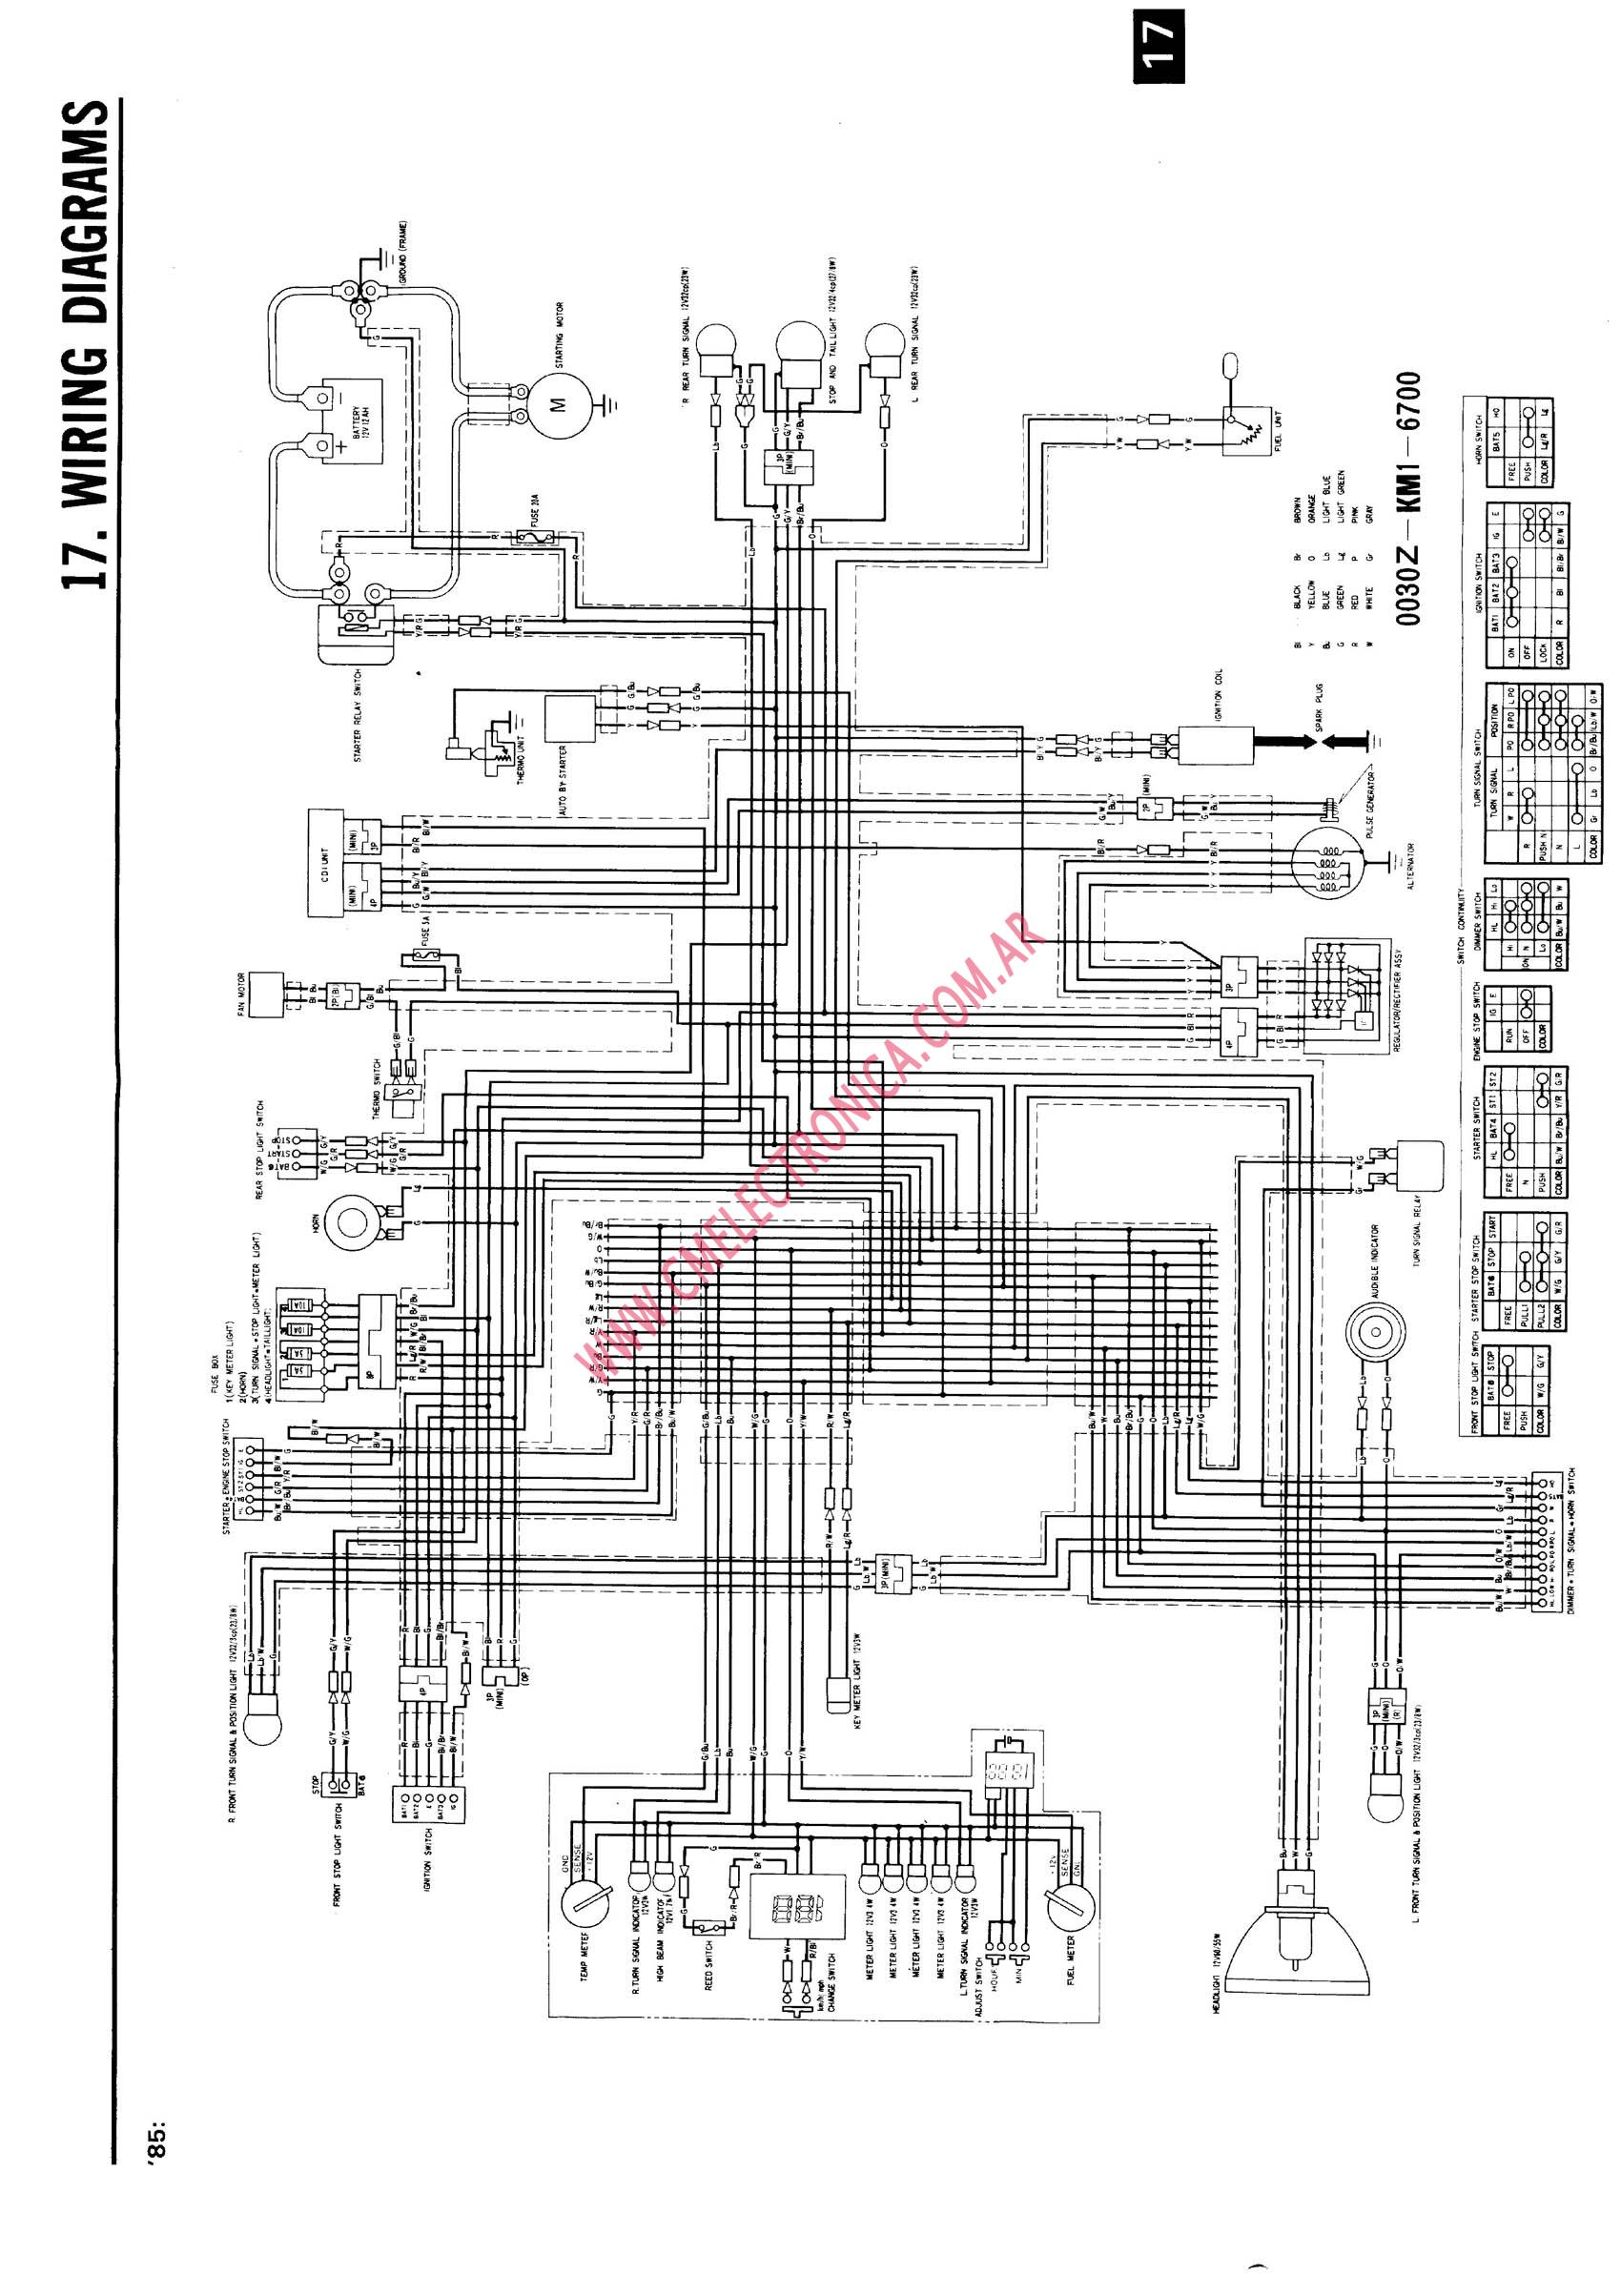 1994 honda elite 80 wiring diagram best wiring library rh 72 princestaash org